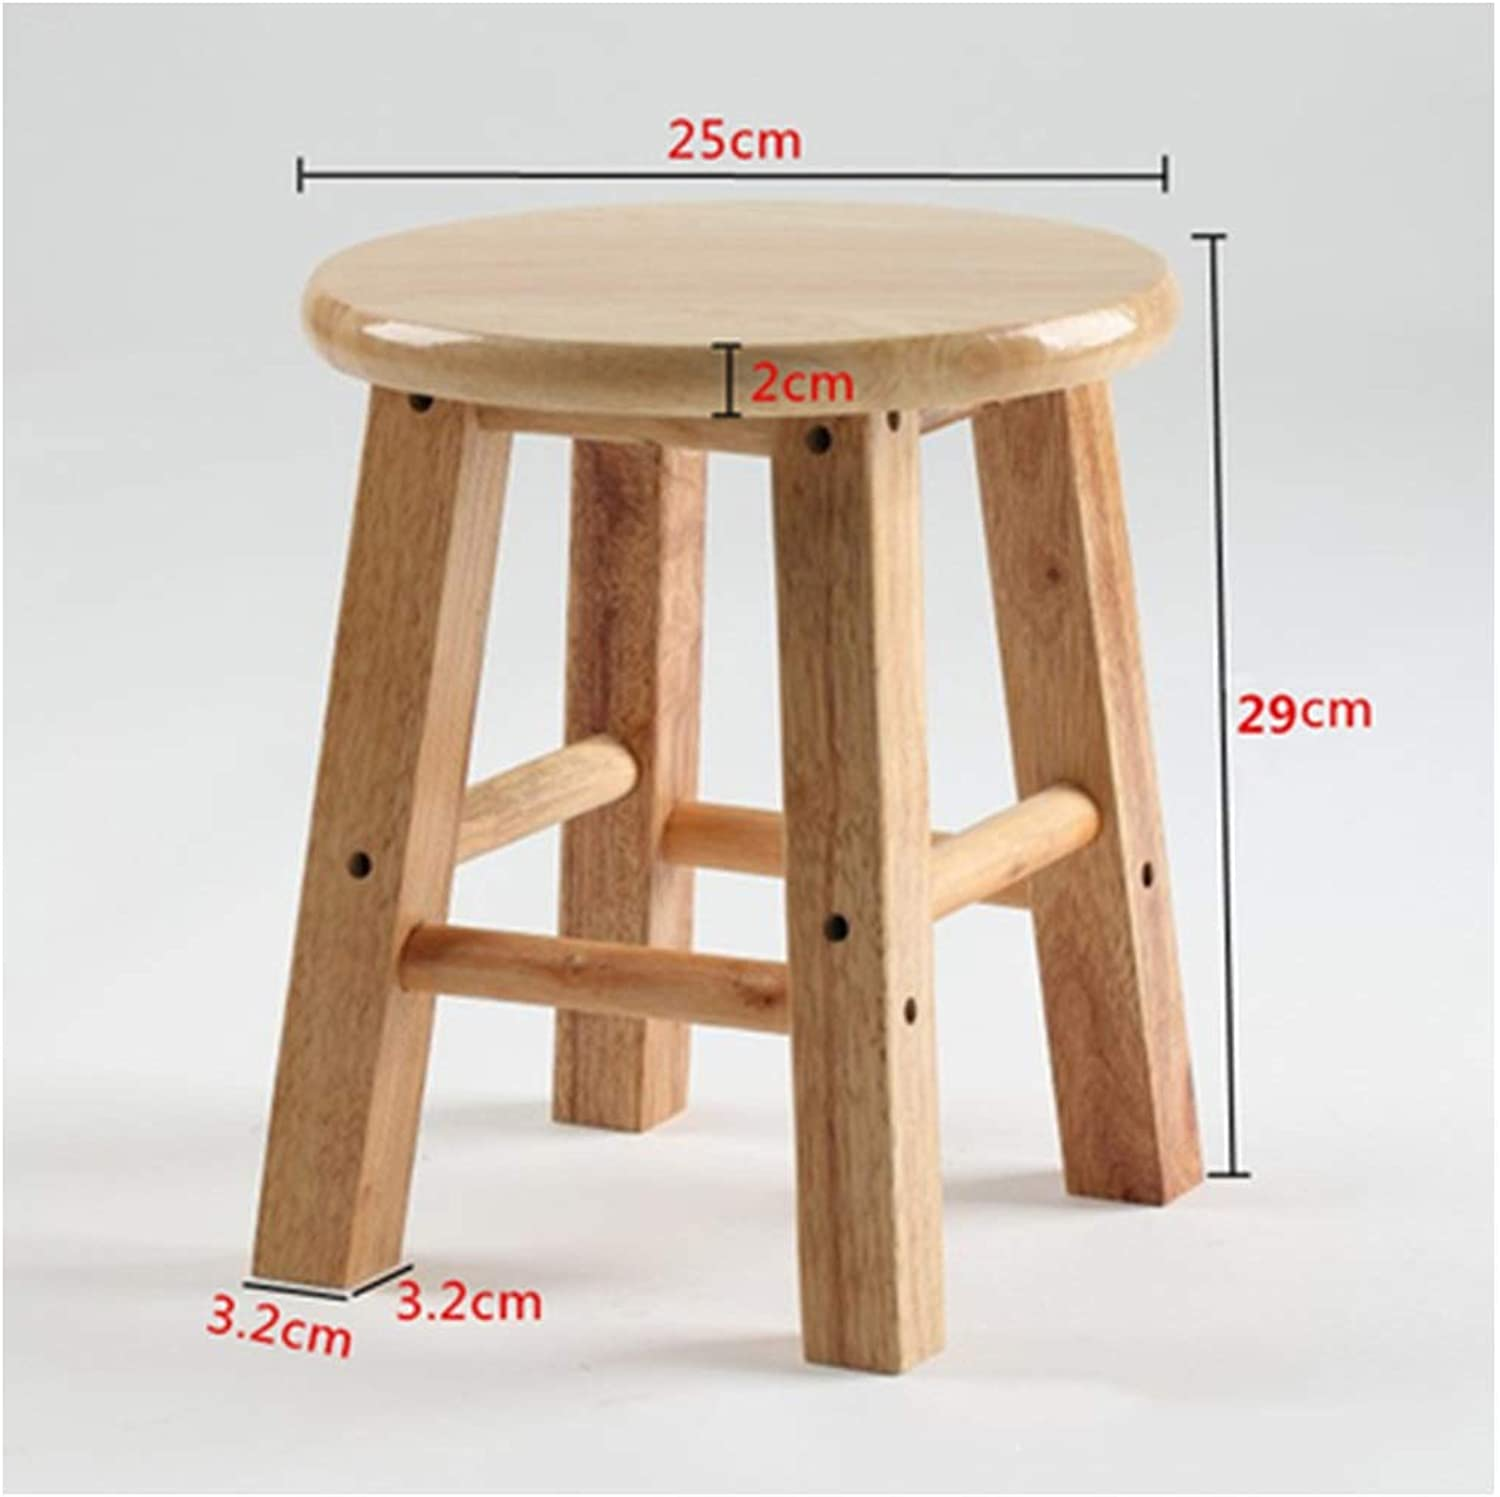 B.YDCM Wooden Bench- Stylish and Durable Oak Small Stool Stool Wood Bench Small Bench shoes Bench Stool - Wood Bench (Size   Large)